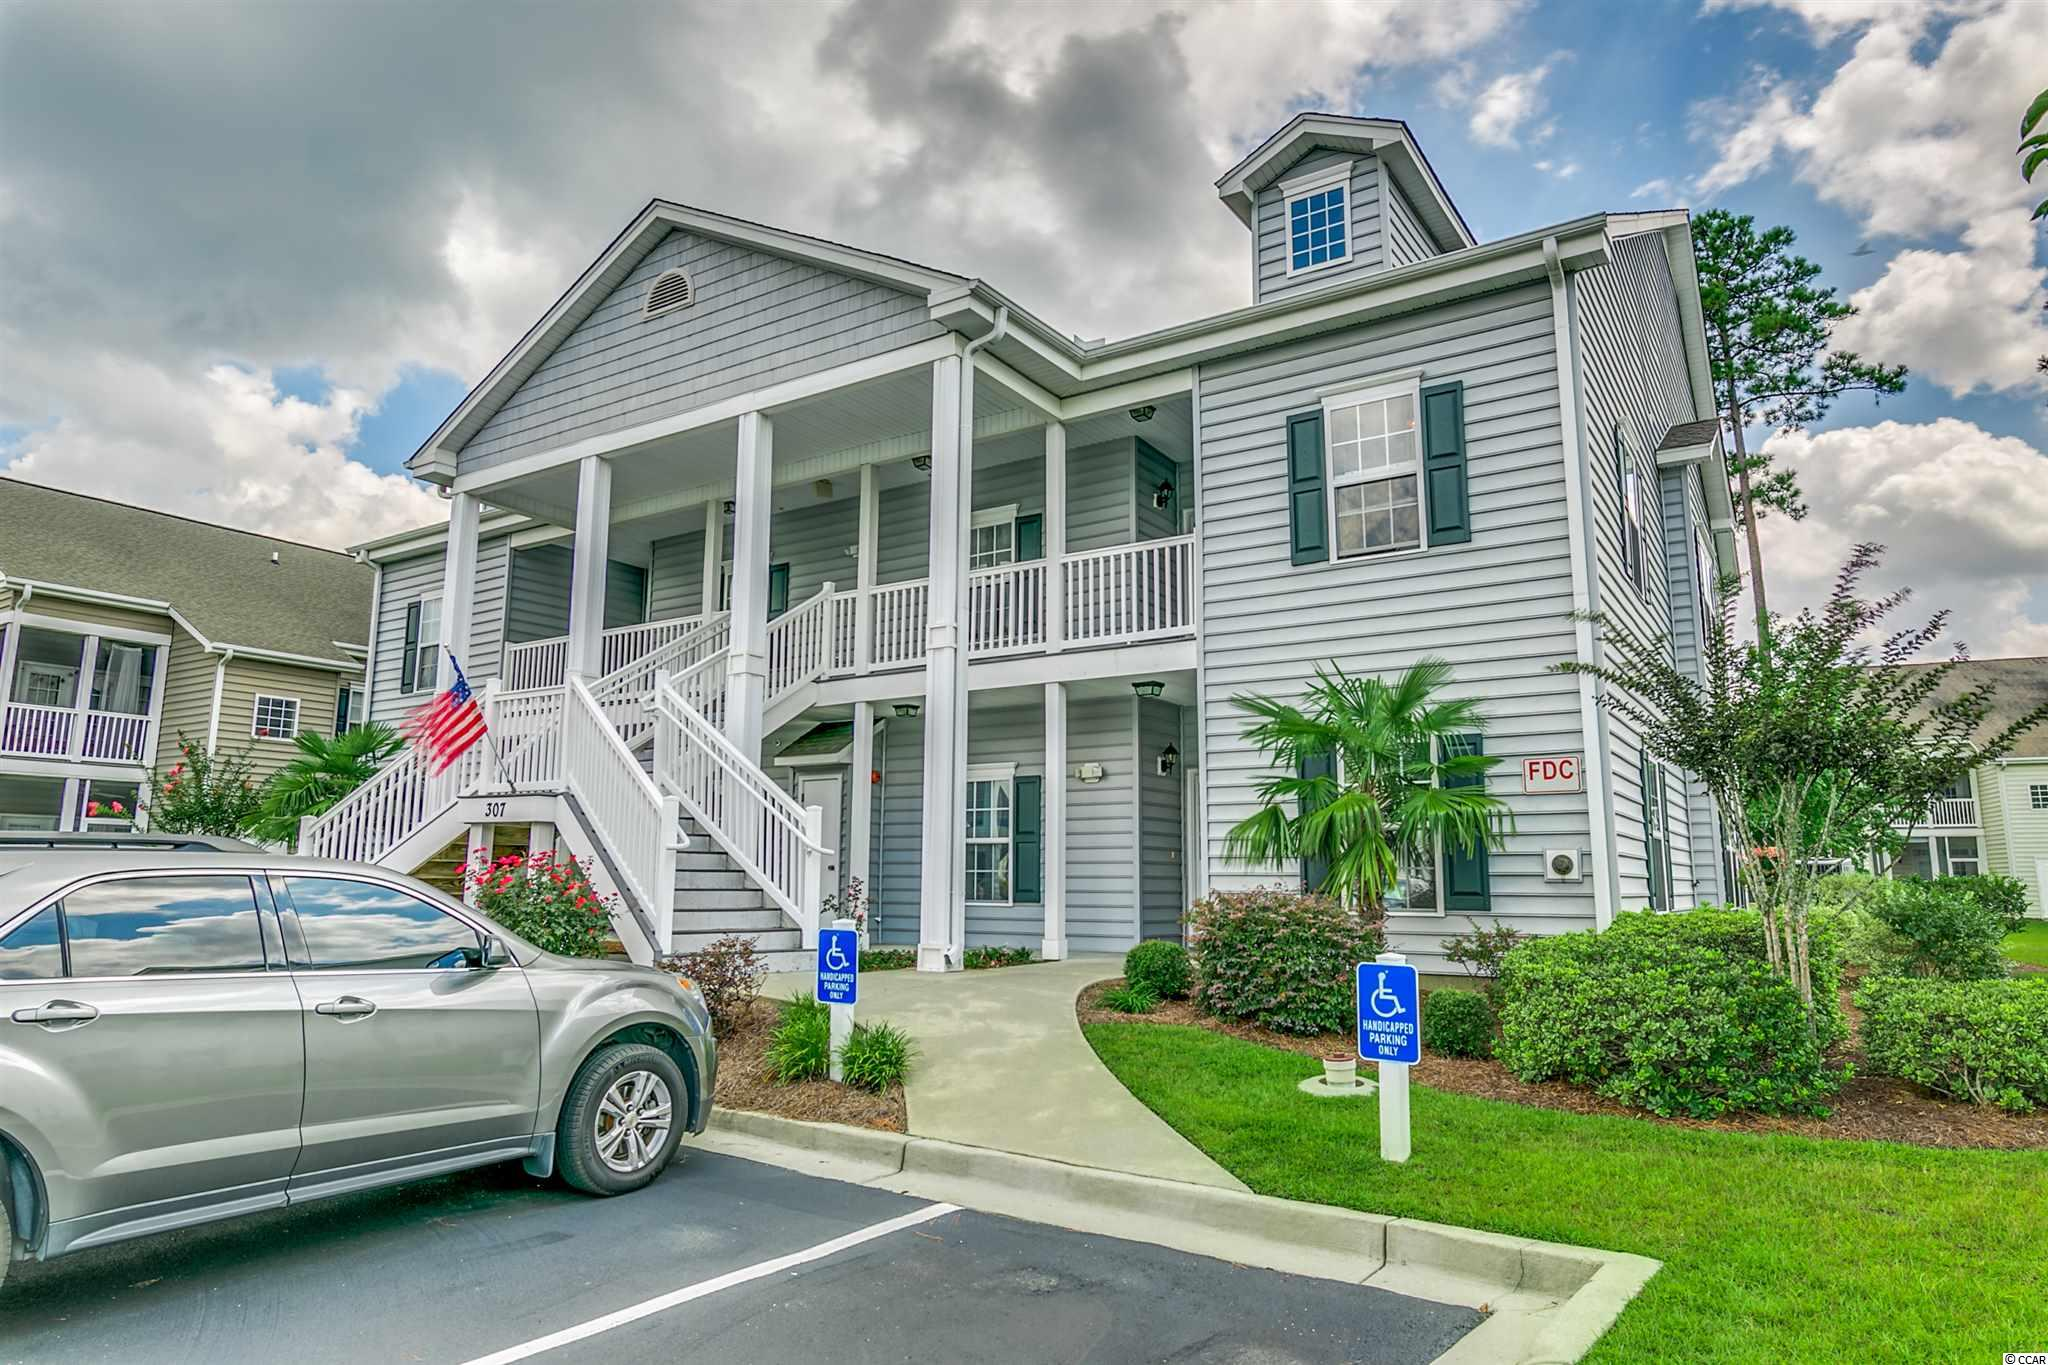 This condo is on the second floor so no one will be above you!  Don't miss out on your opportunity to live in the gorgeous community of Marcliffe West in Murrells Inlet.  This 3 bedroom, 2 bathroom unit has vaulted ceilings making the unit feel extra spacious.  The only carpets you will find are in the bedrooms with ceramic tile in the bathrooms and kitchen, and hardwoods throughout the main living area.  In the kitchen, you will notice the upgraded cabinets and can lighting.  The owner's bedroom includes a tray ceiling, walk-in closet, and large attached bathroom.  There are only 4 units per building meaning that all of the units are end units!  On the back of the condo you find an additional stairway and entry along with a gorgeous screened-in porch.  The community has a beautiful pool and is located in the desirable Blackmoor Community.  The monthly HOA fee includes pool, lawn maintenance, trash, water and sewer, building insurance, and pest control.  This perfect location is close to The MarshWalk where you can enjoy live music and also close to Myrtle Beach where you can play like a tourist.  Make sure to put this one on your list to see with your Realtor today!